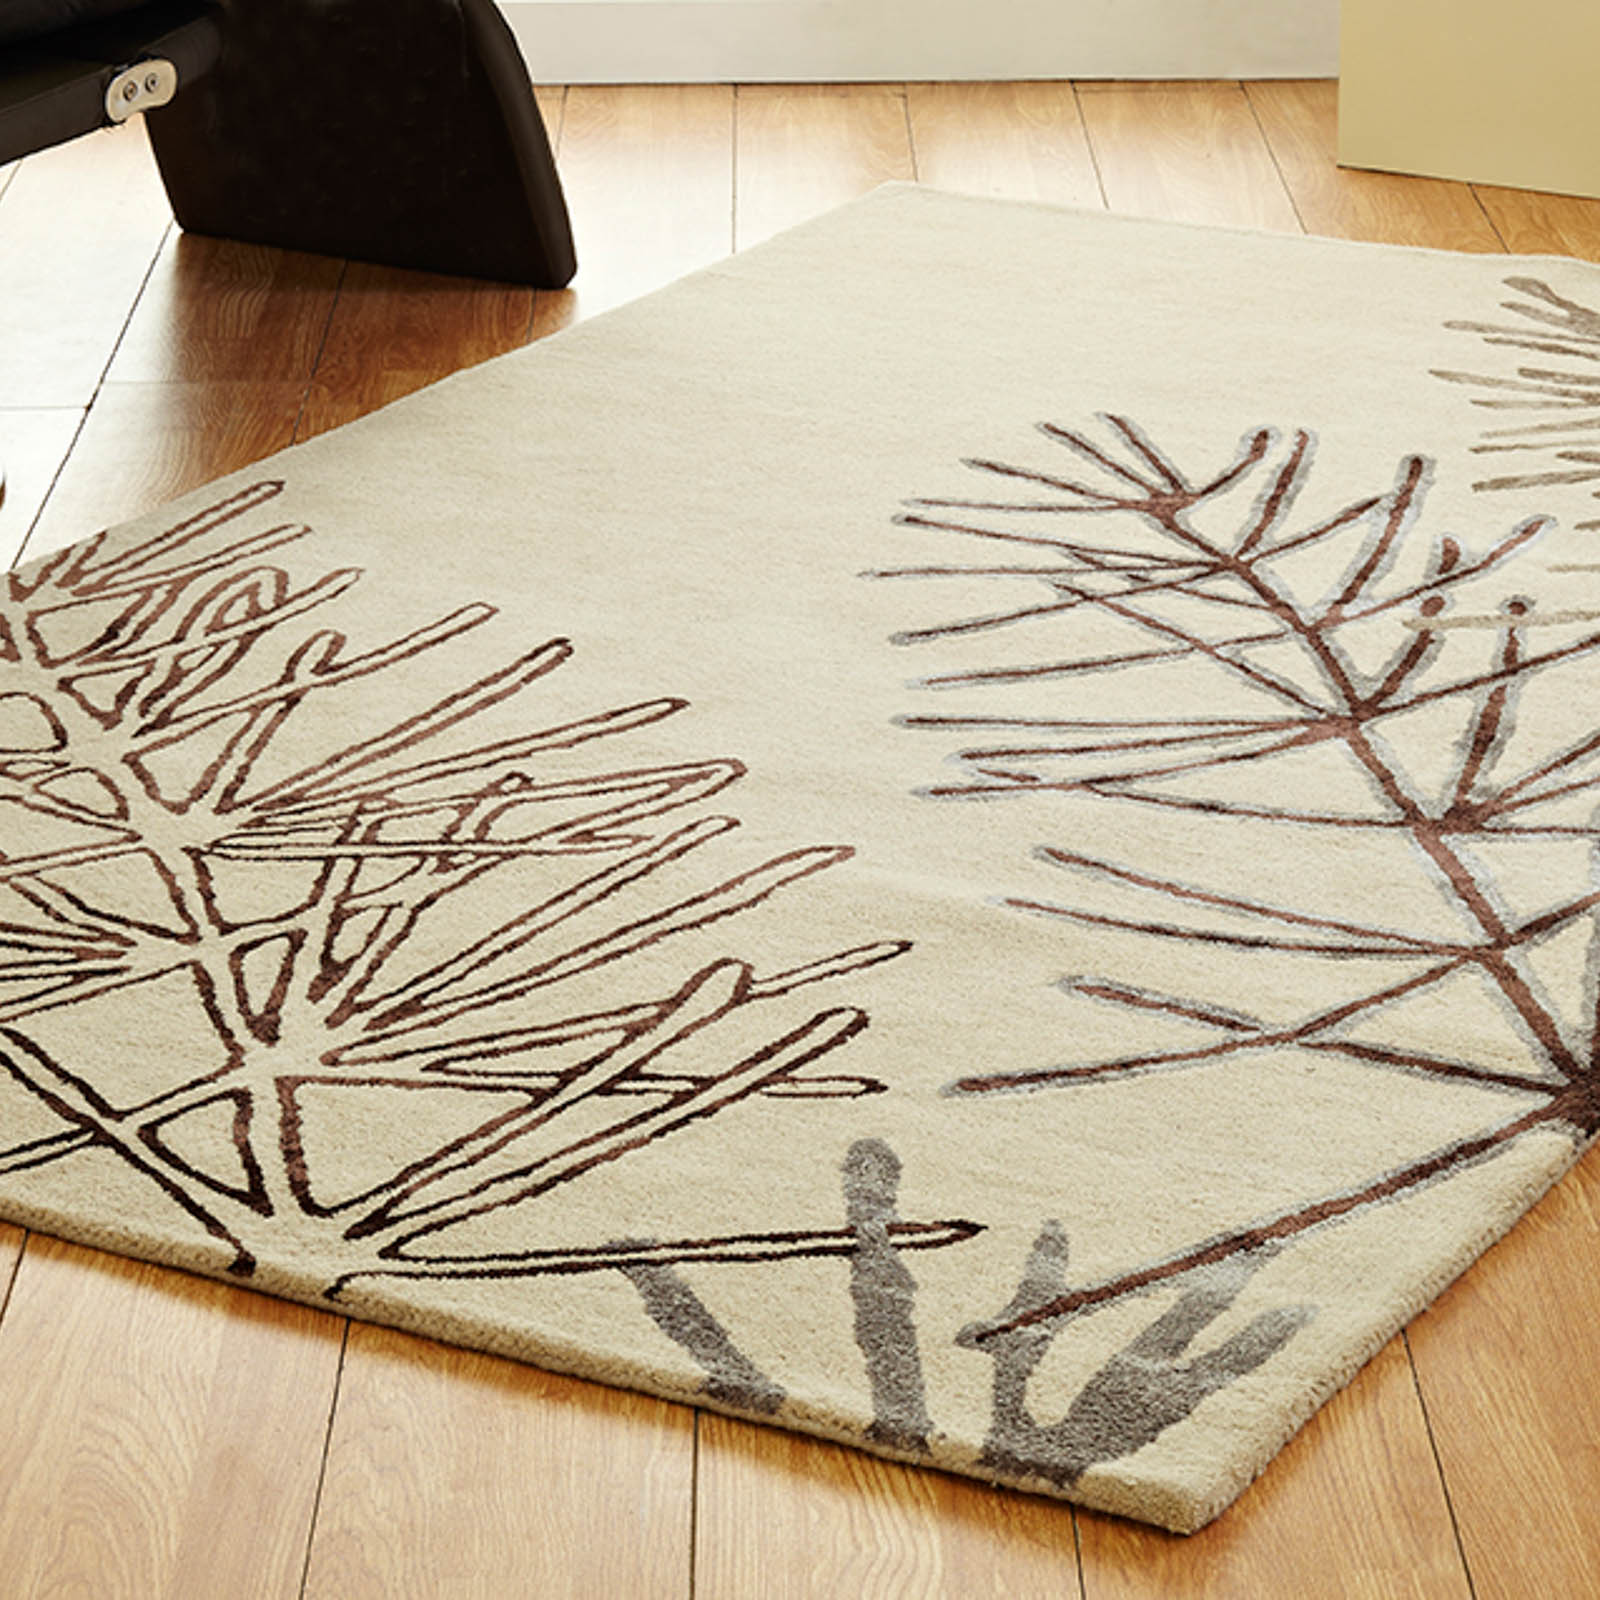 Unique Serene Rugs in Beige